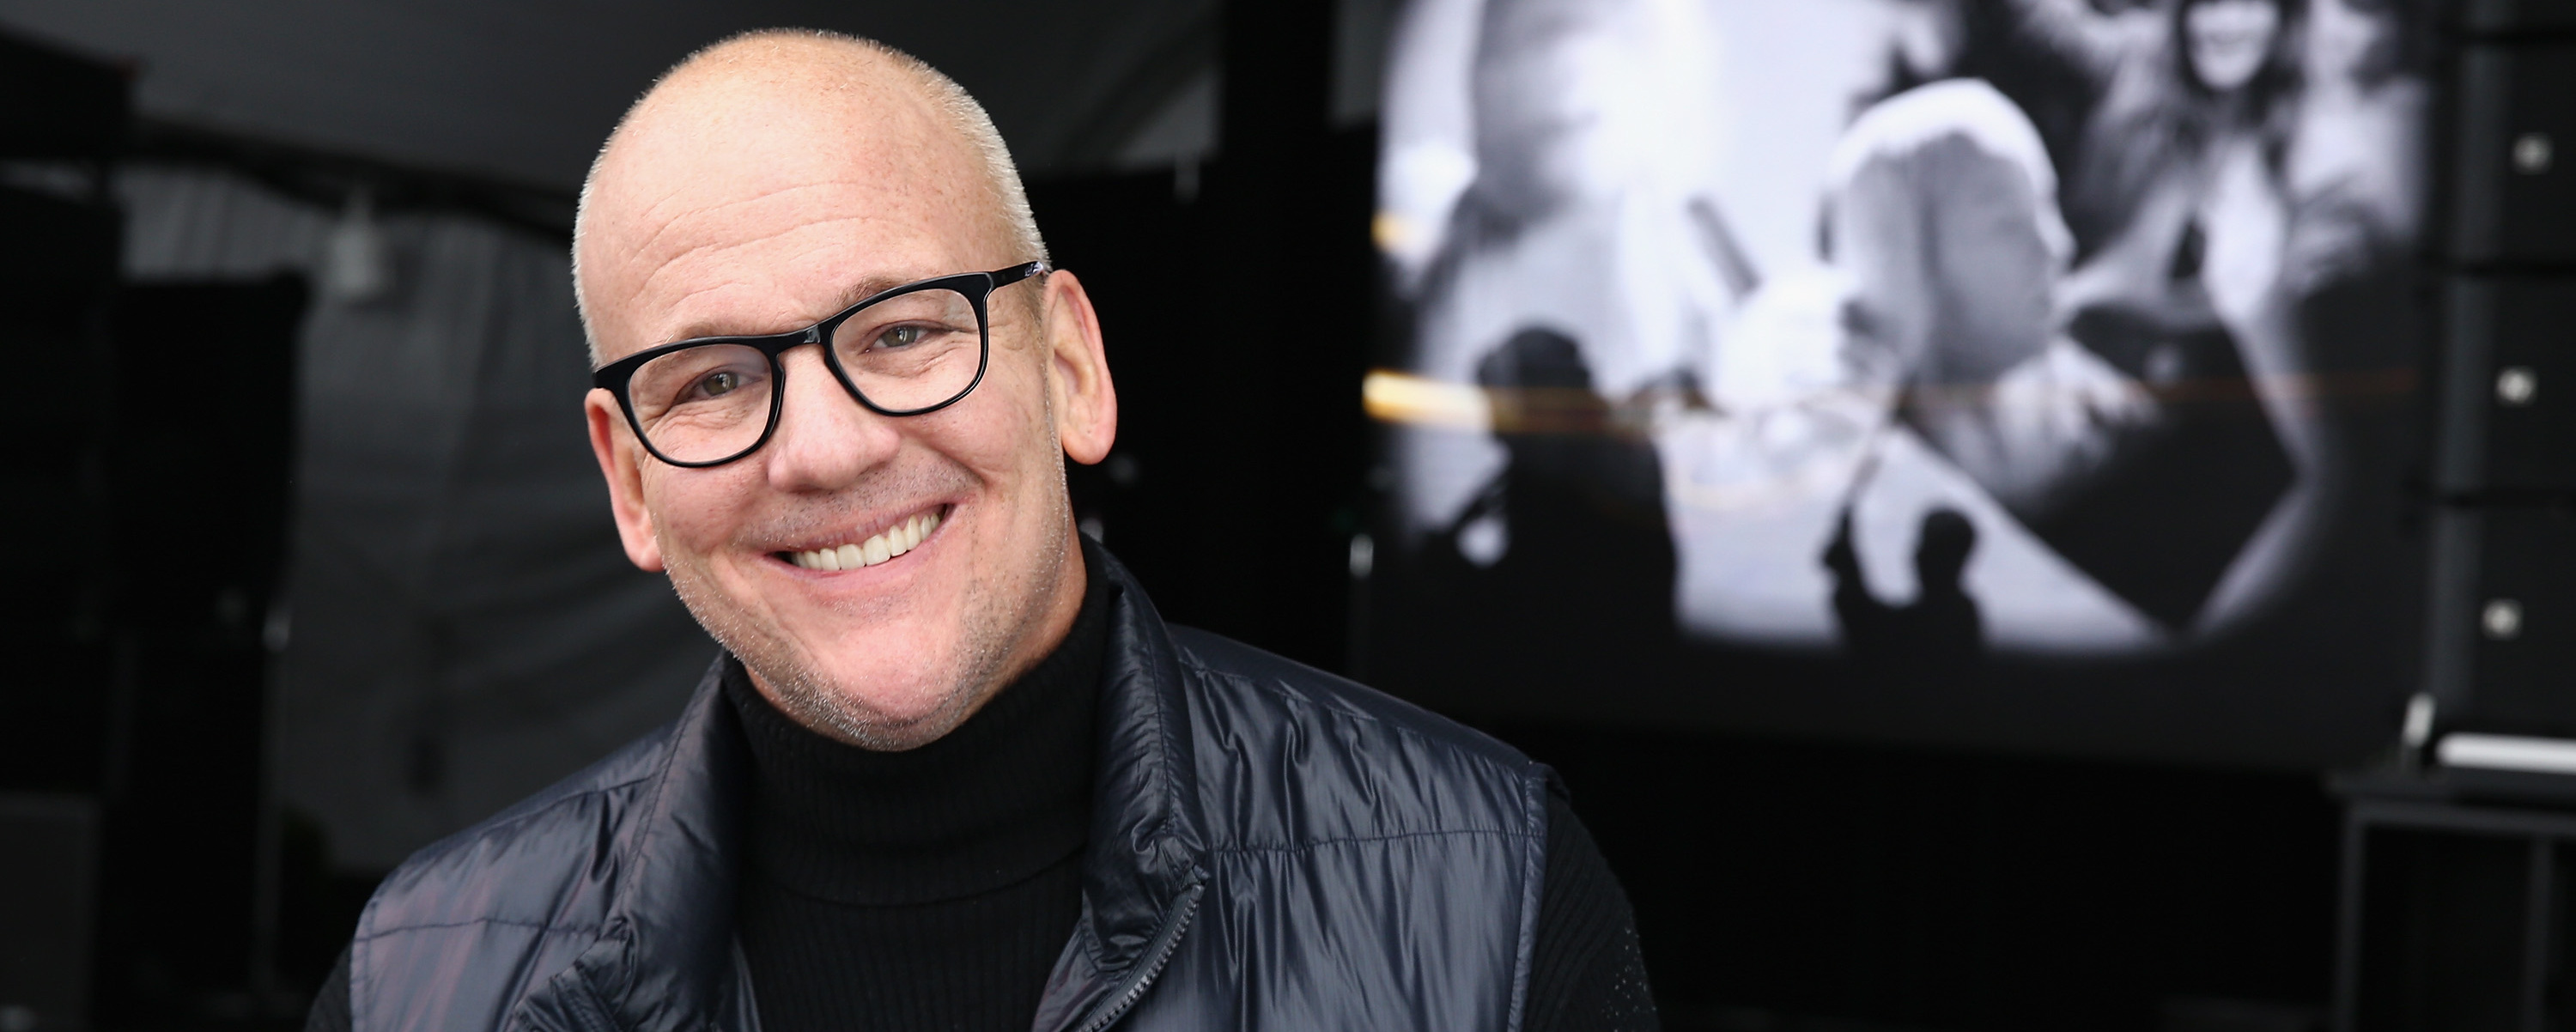 John Heilemann Writing Book on 2020 Election